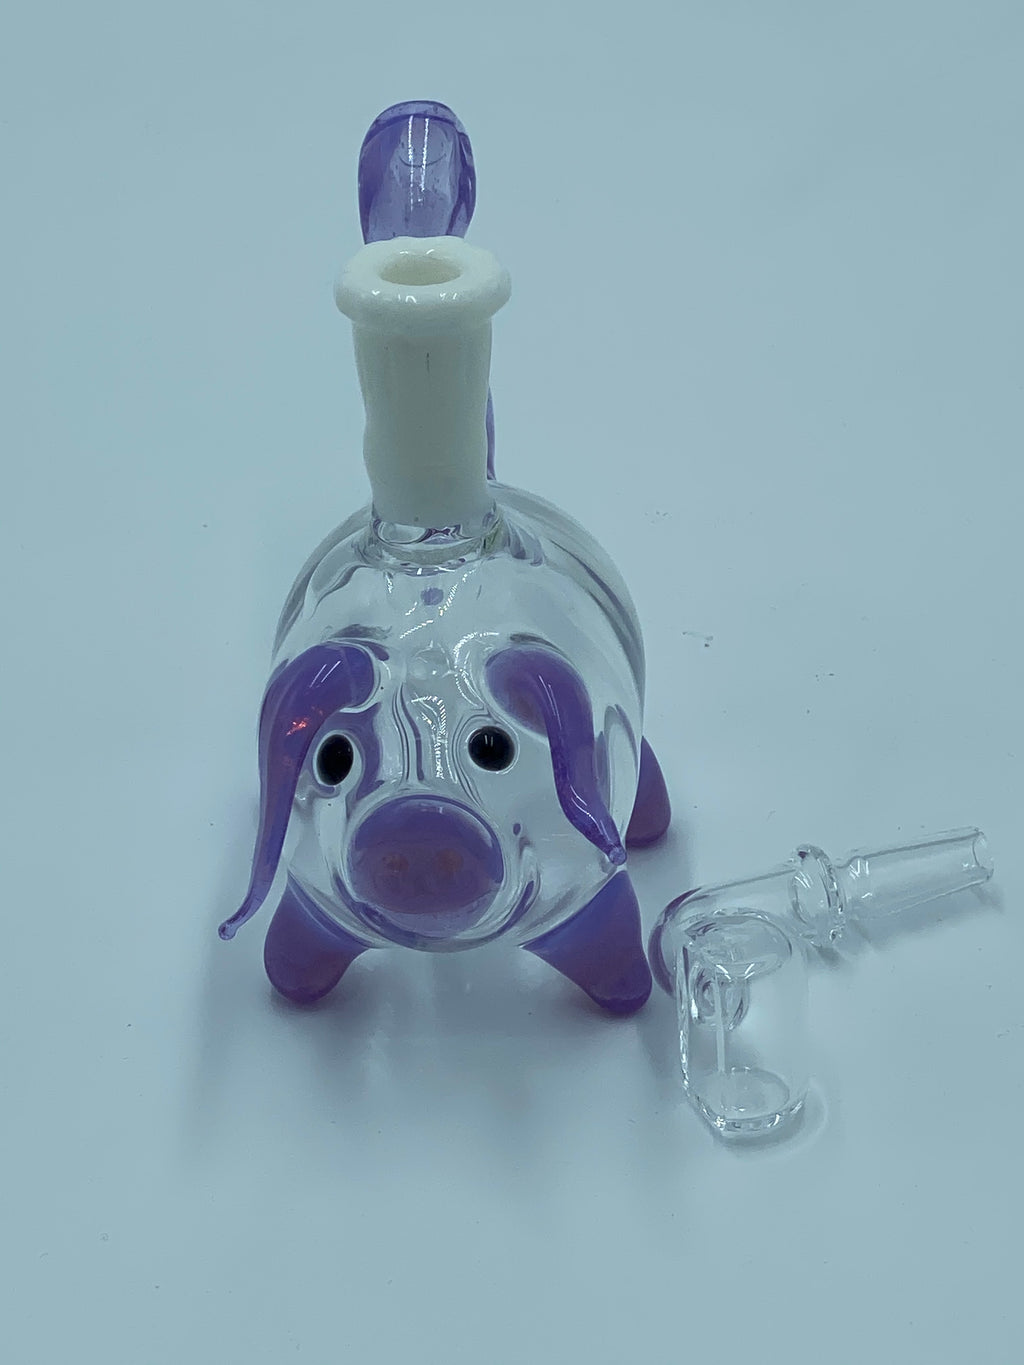 KOBB GLASS PIG RIG - Smoke Country - Land of the artistic glass blown bongs